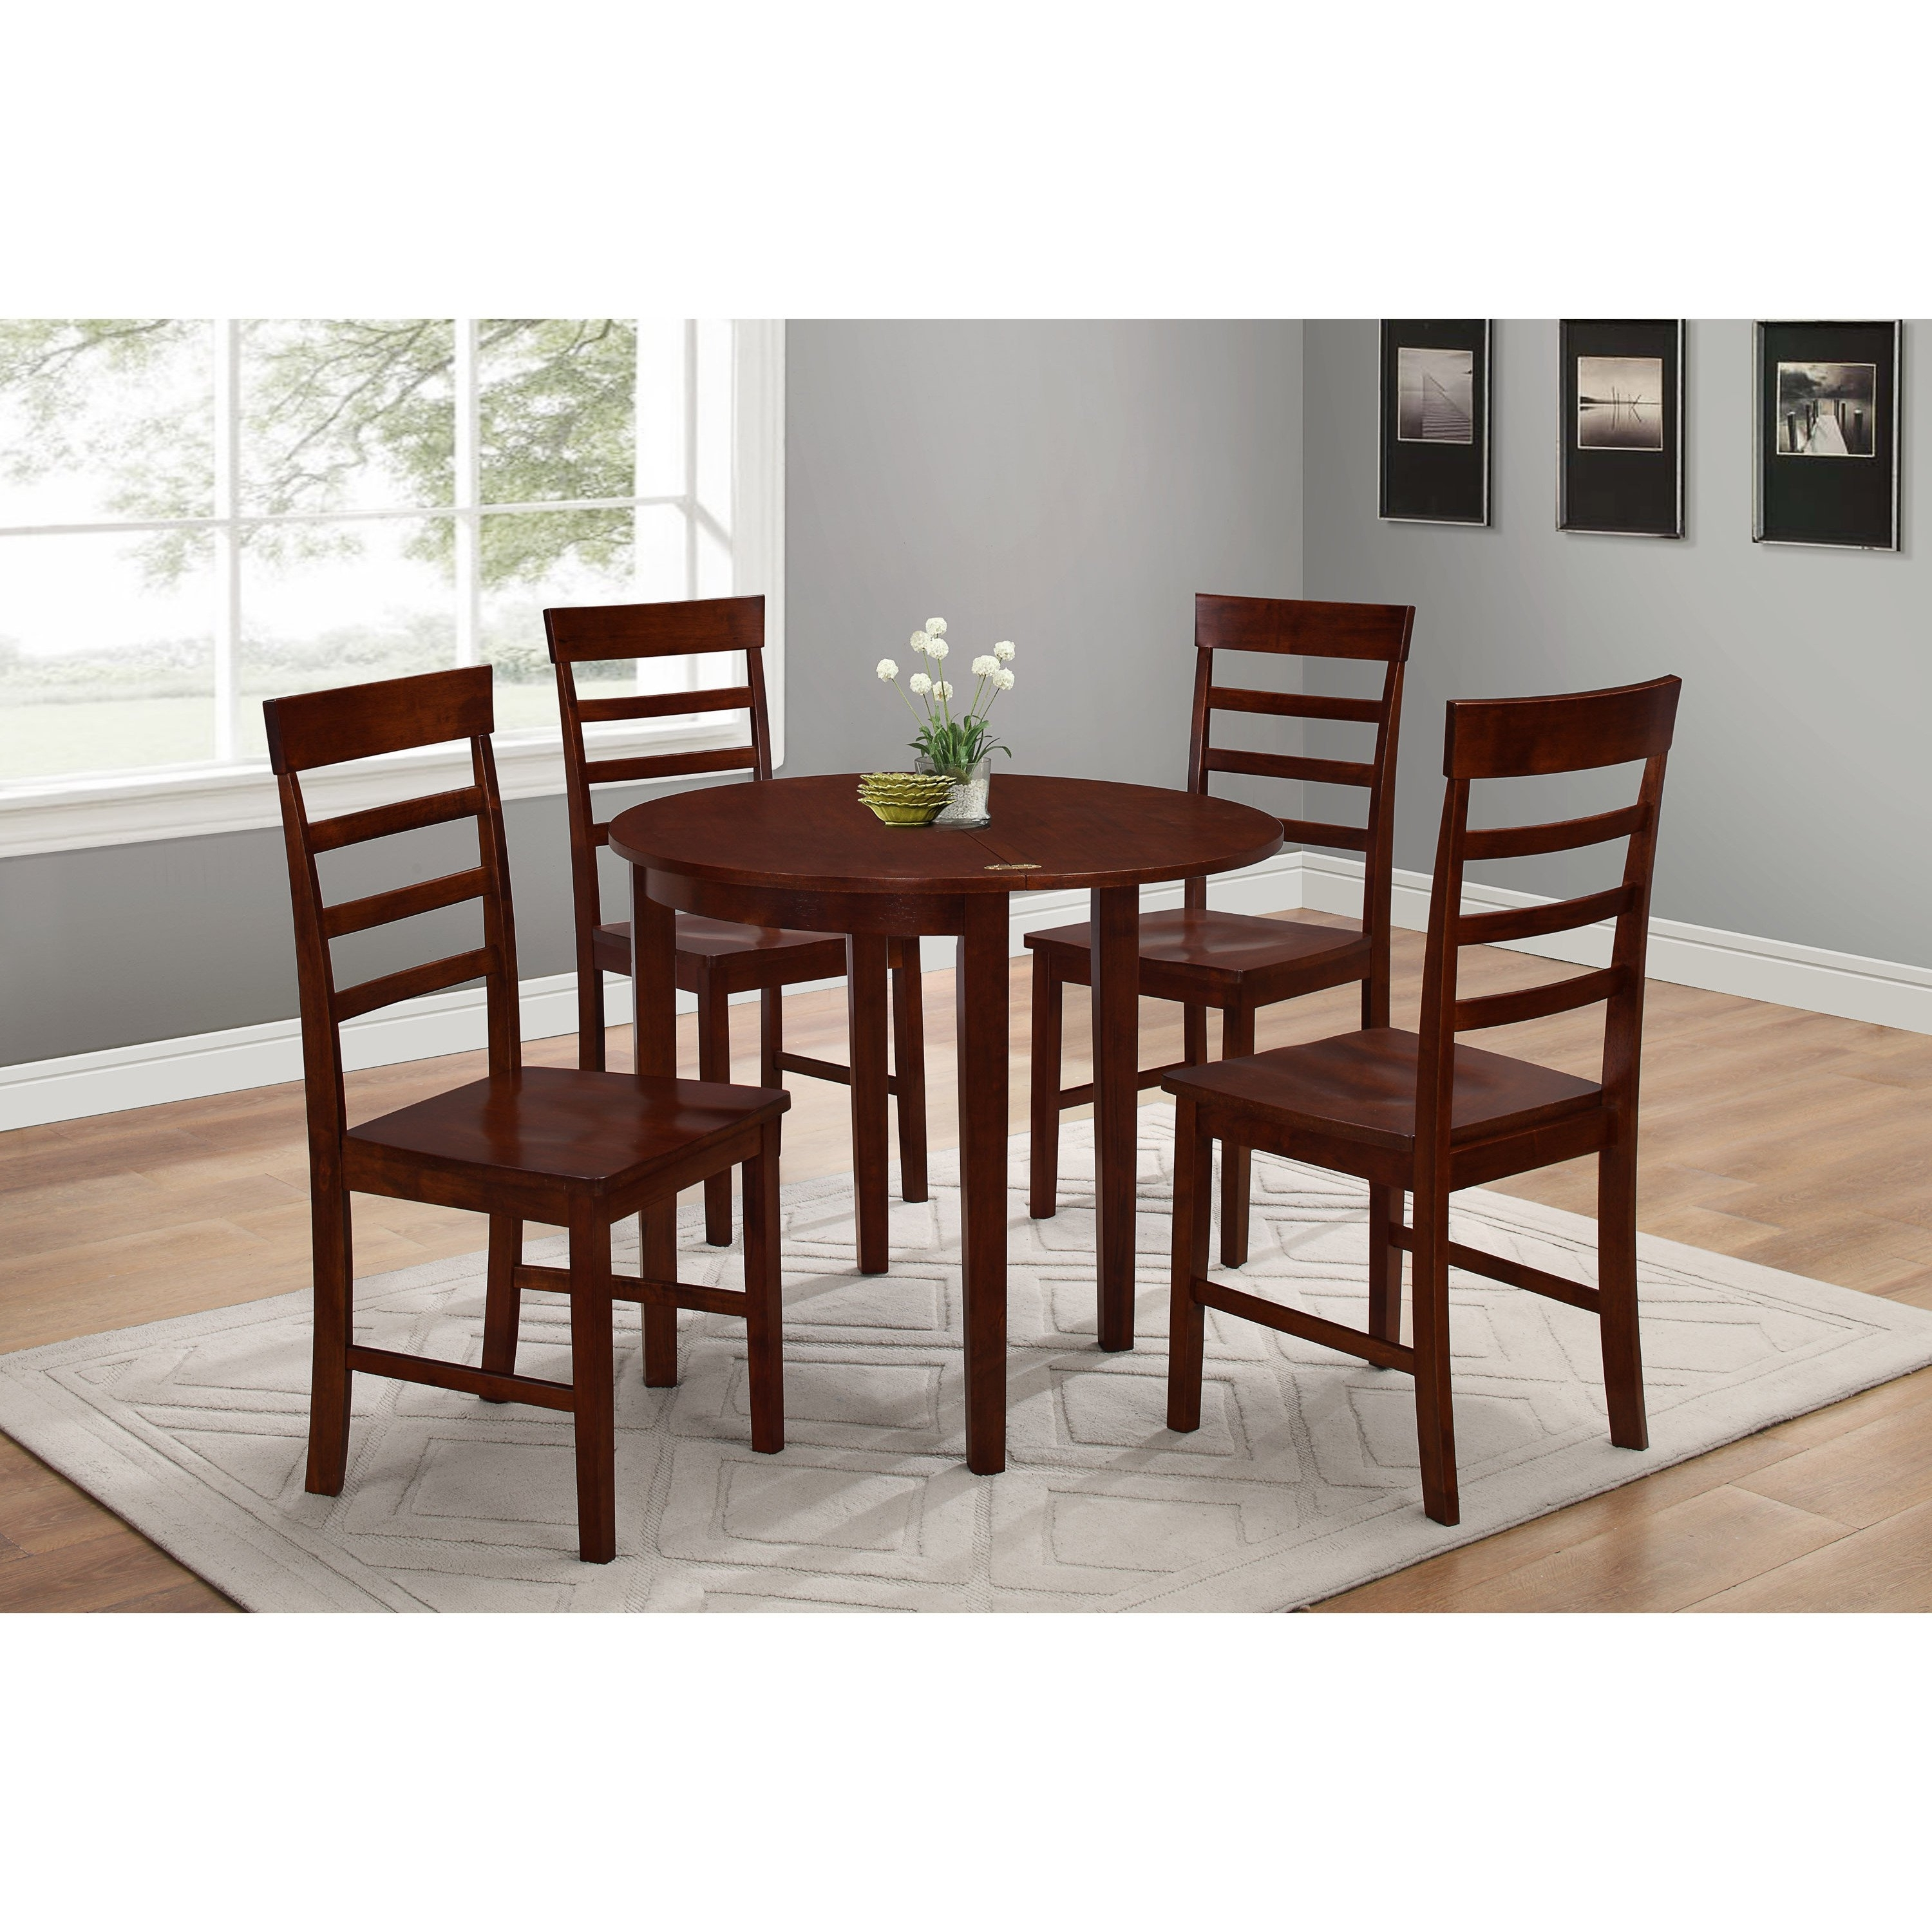 Shop Springfield Flip Antique Oak Half Moon Table – Free Shipping Throughout Favorite Half Moon Dining Table Sets (View 19 of 25)